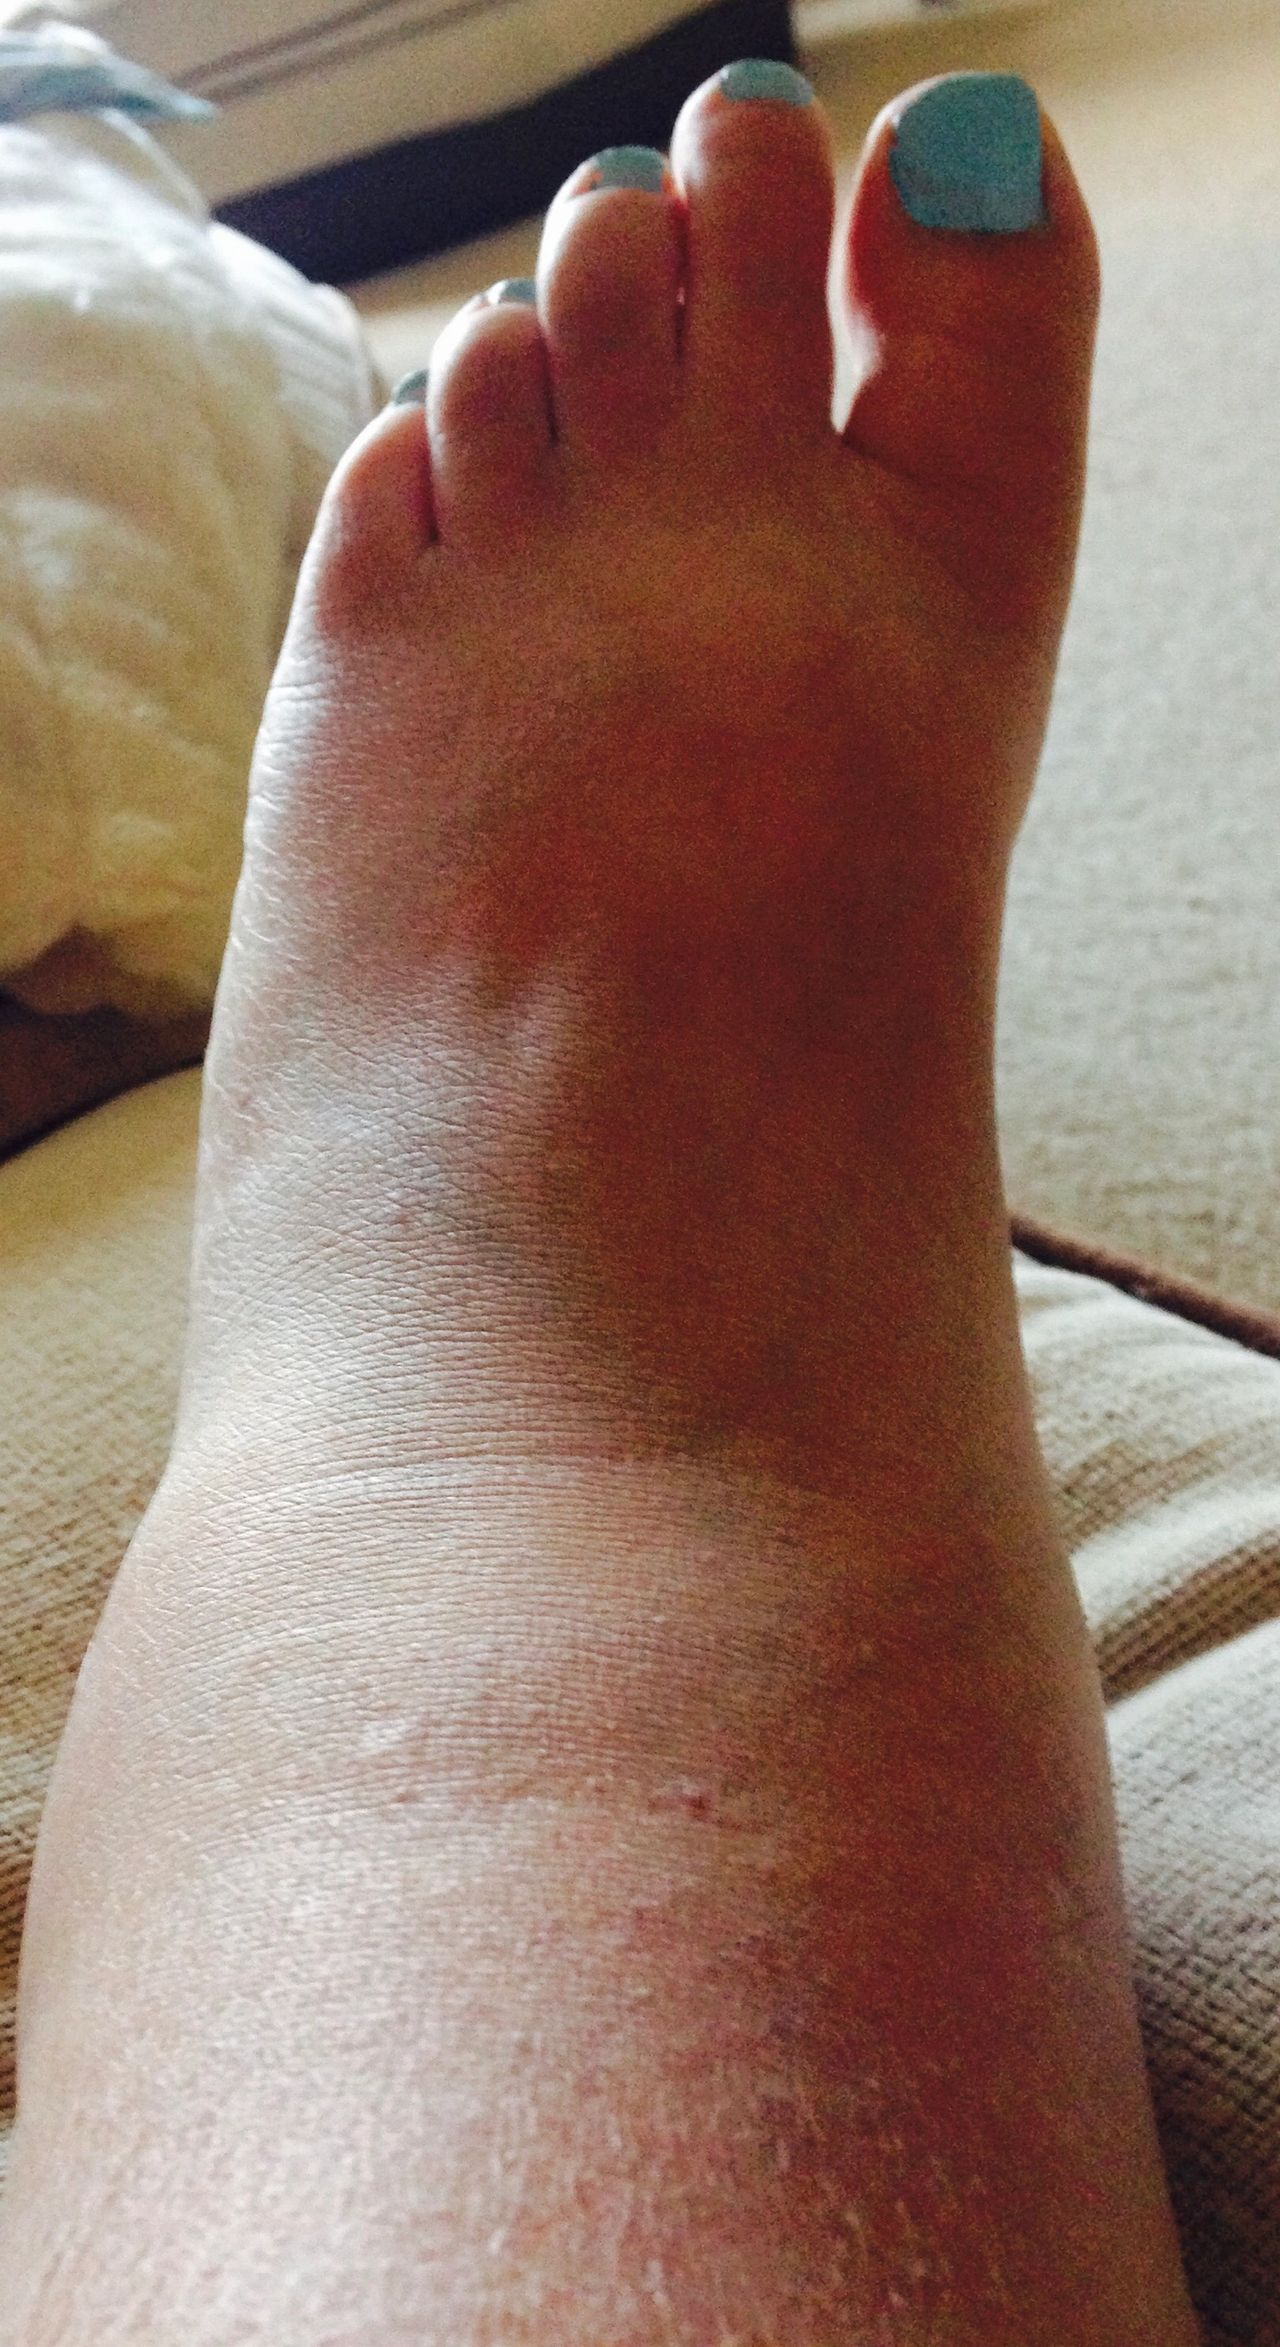 Suffering from Swollen Feet and Ankles in the hot weather?